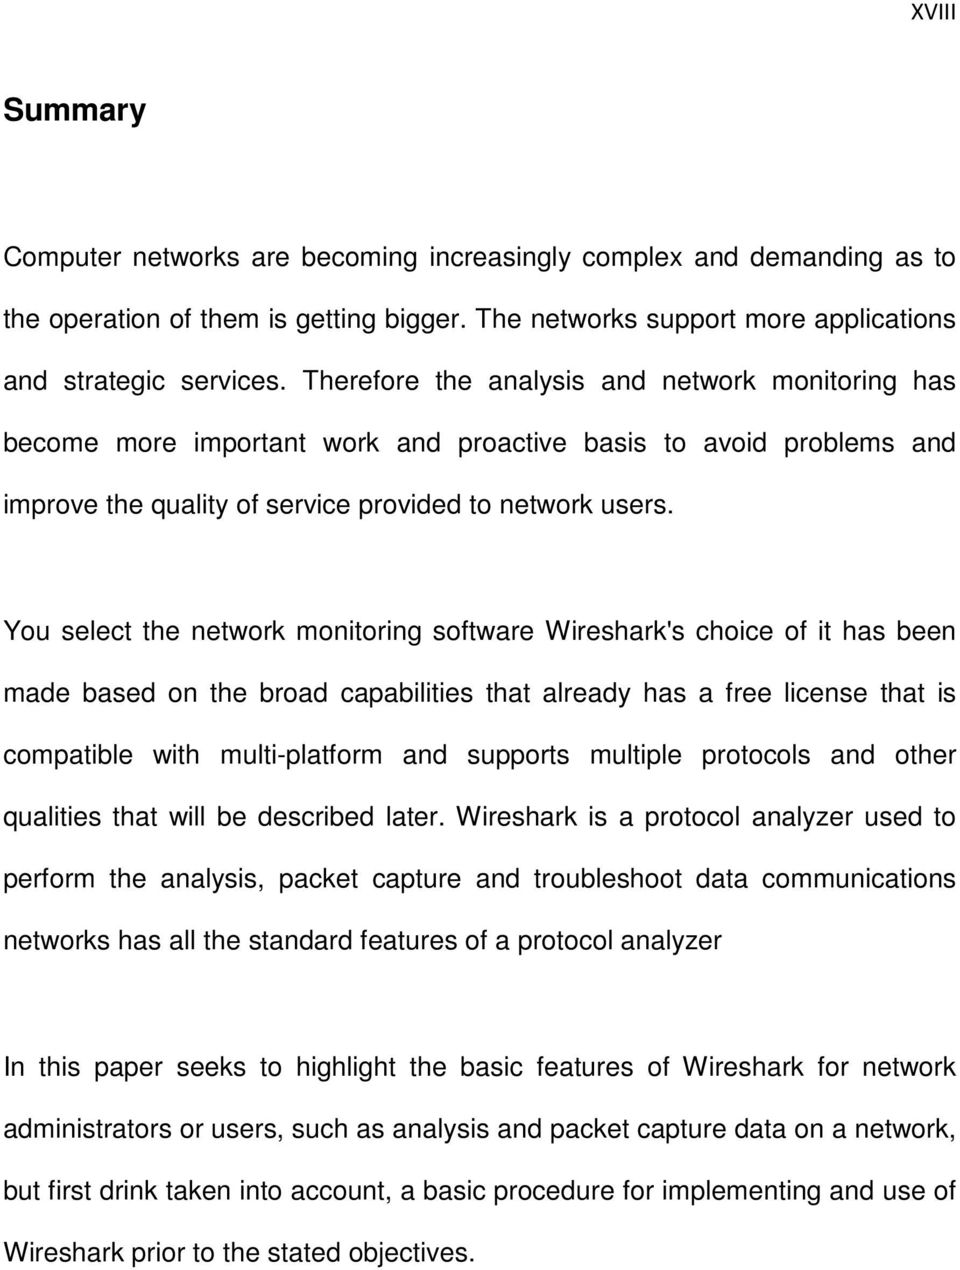 You select the network monitoring software Wireshark's choice of it has been made based on the broad capabilities that already has a free license that is compatible with multi-platform and supports